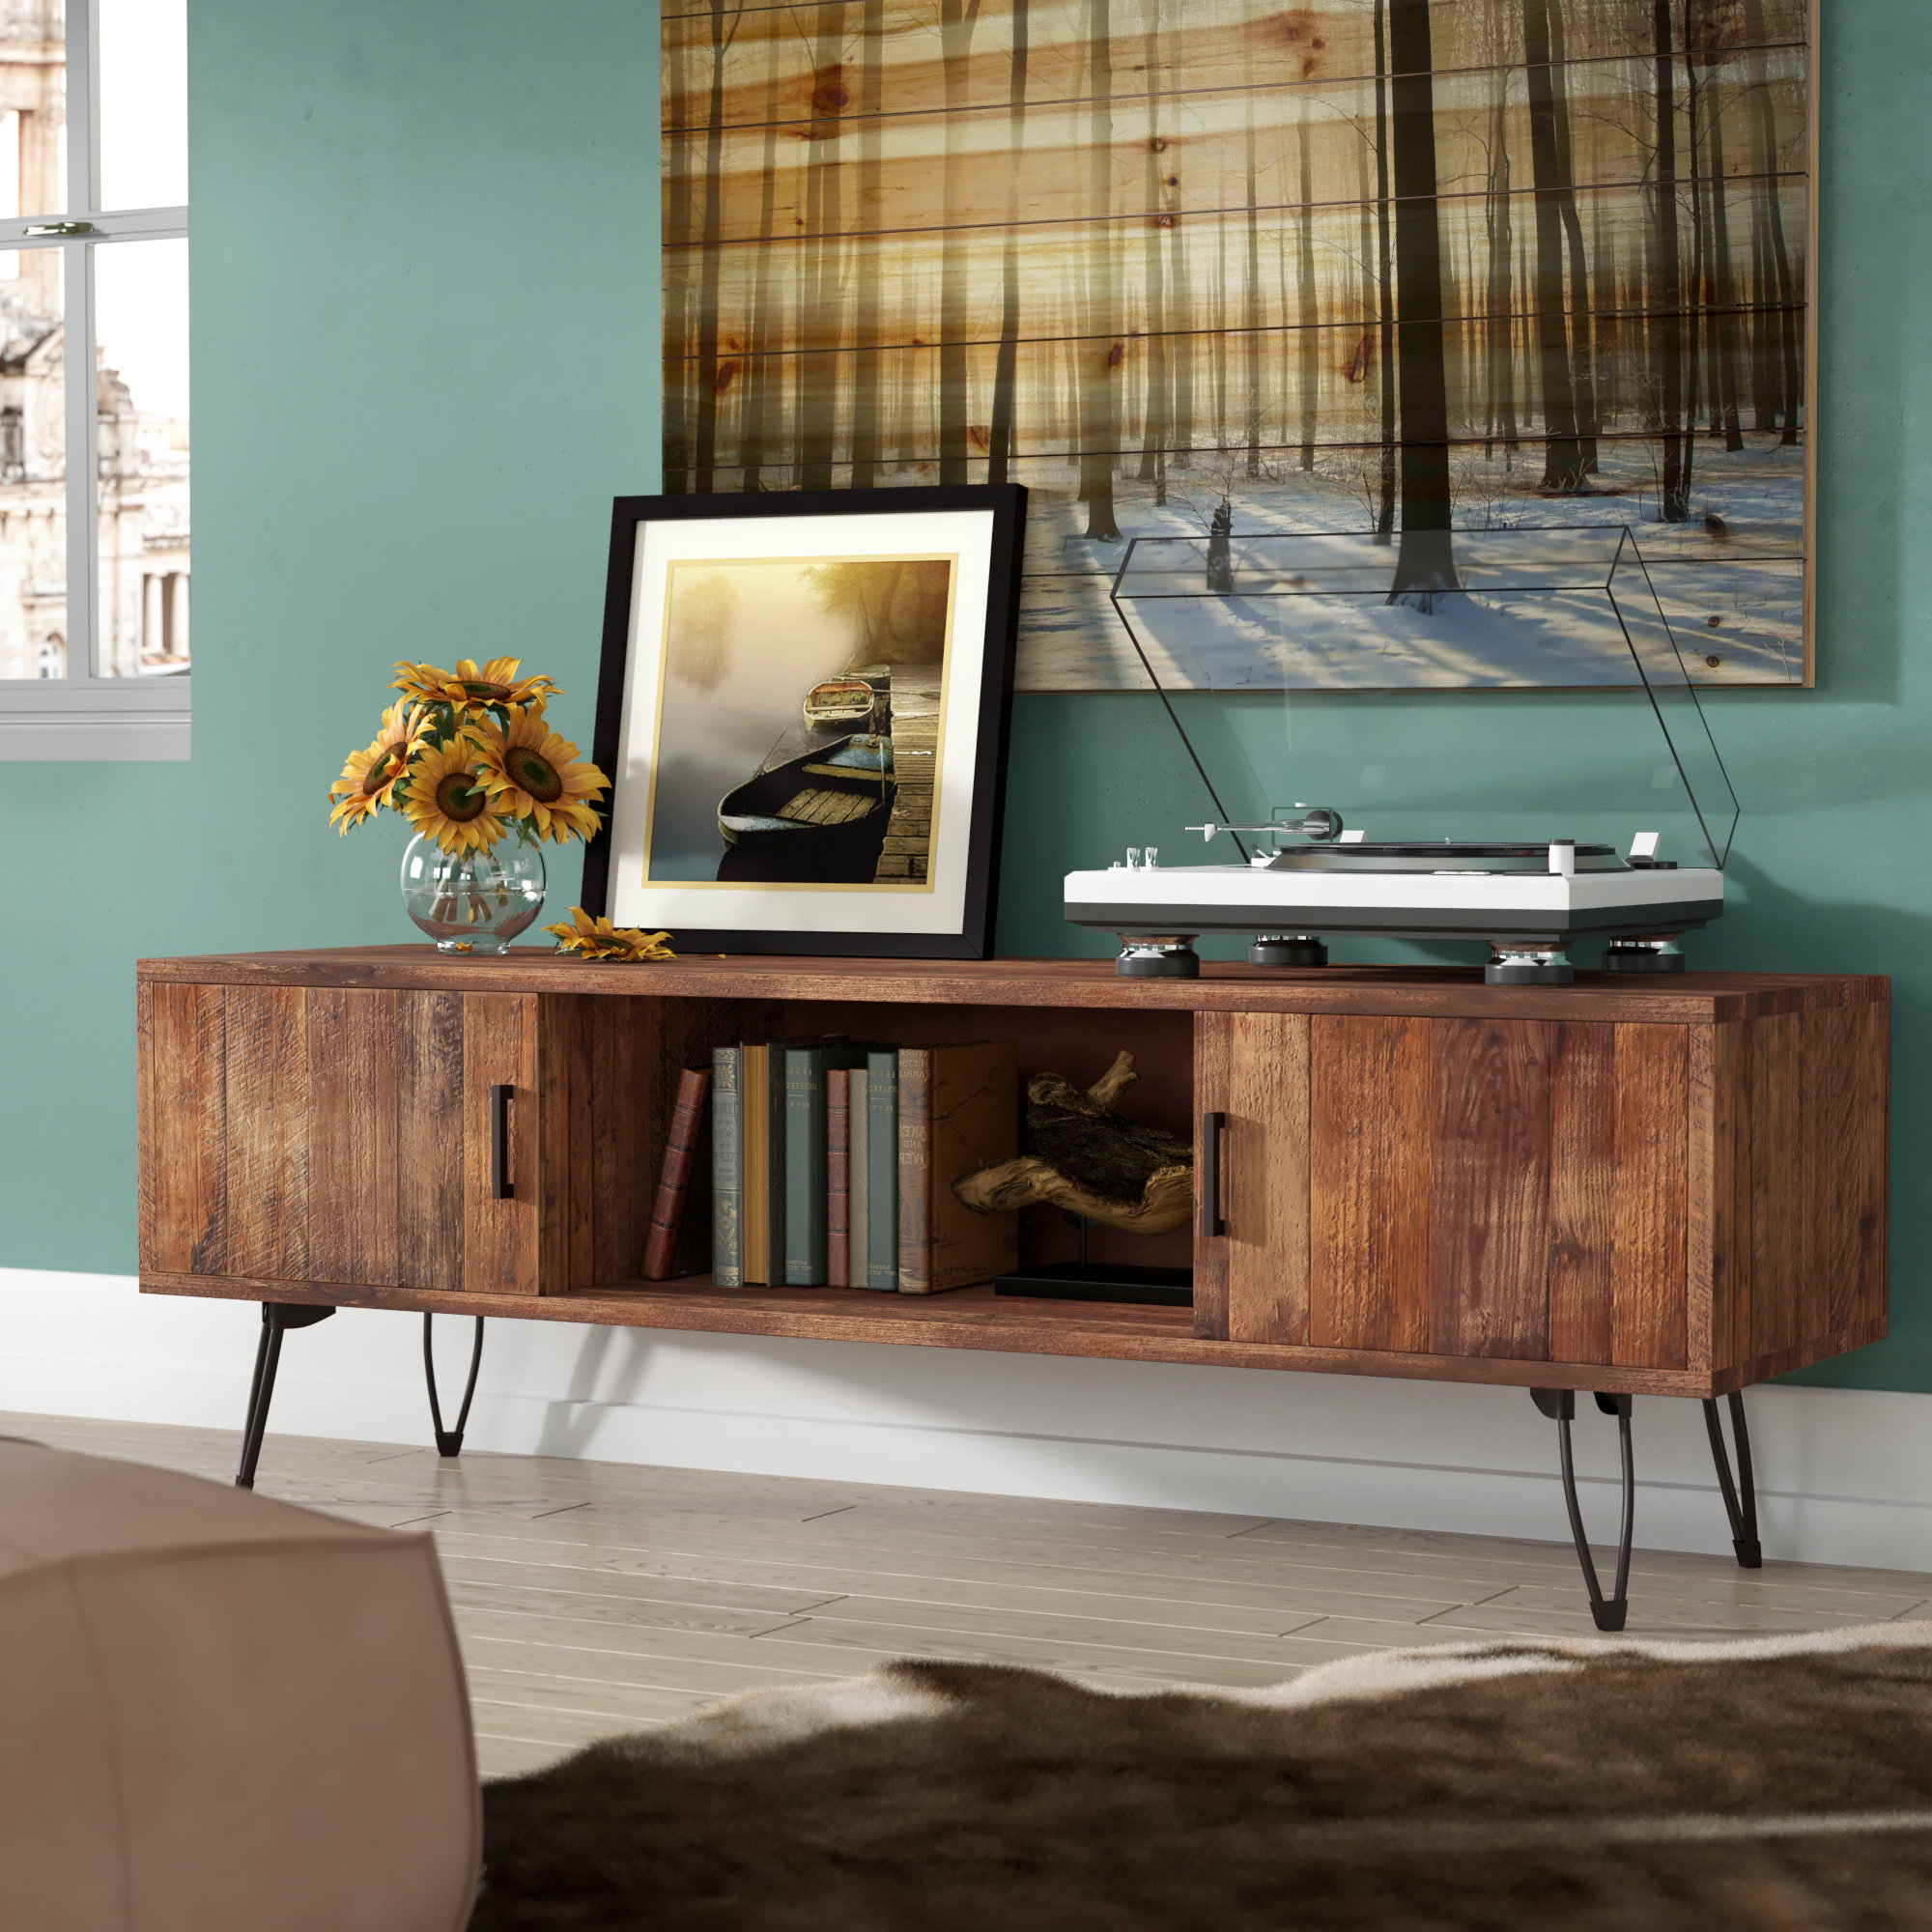 Solid Wood Tv Stands & Entertainment Centers You'll Love | Wayfair Inside Walters Media Console Tables (View 8 of 20)